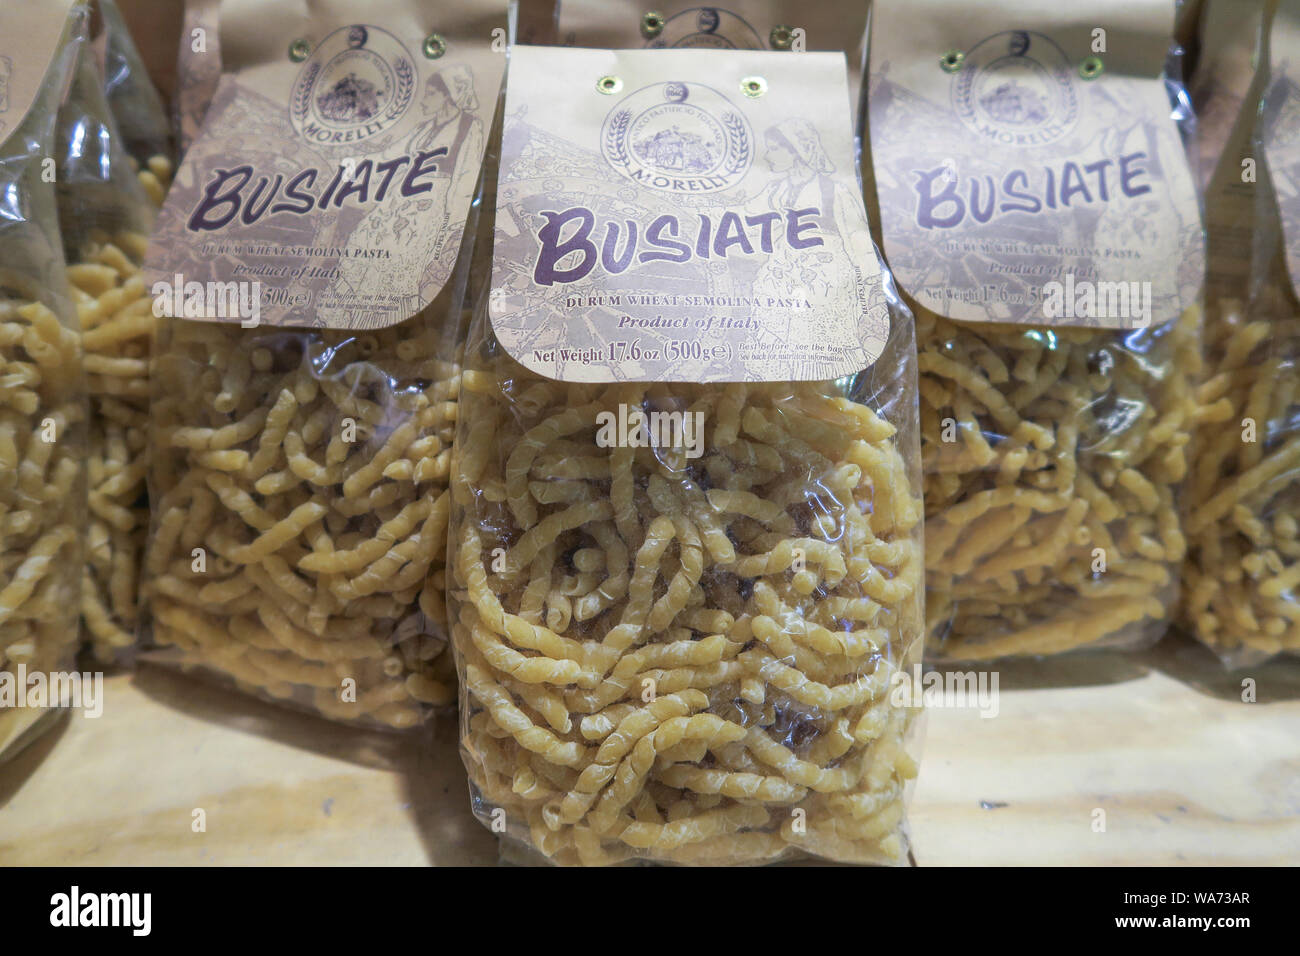 Eataly Italian Marketplace Is A Popular Store With